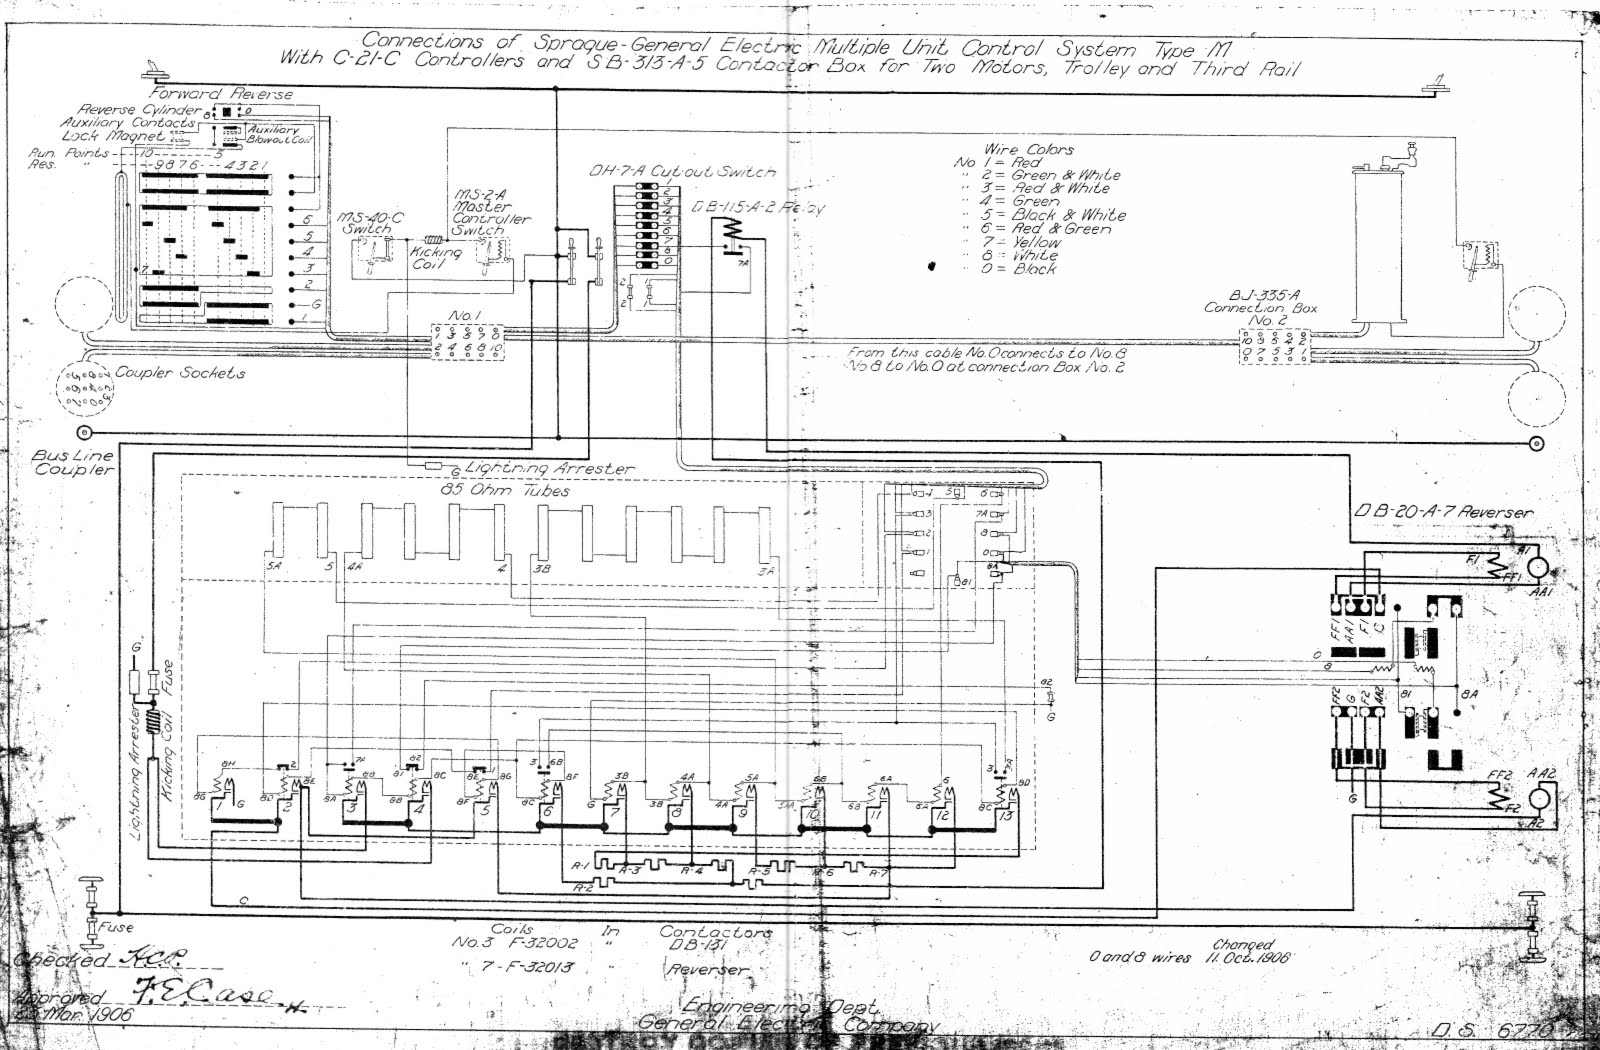 chevy chevette engine diagram html